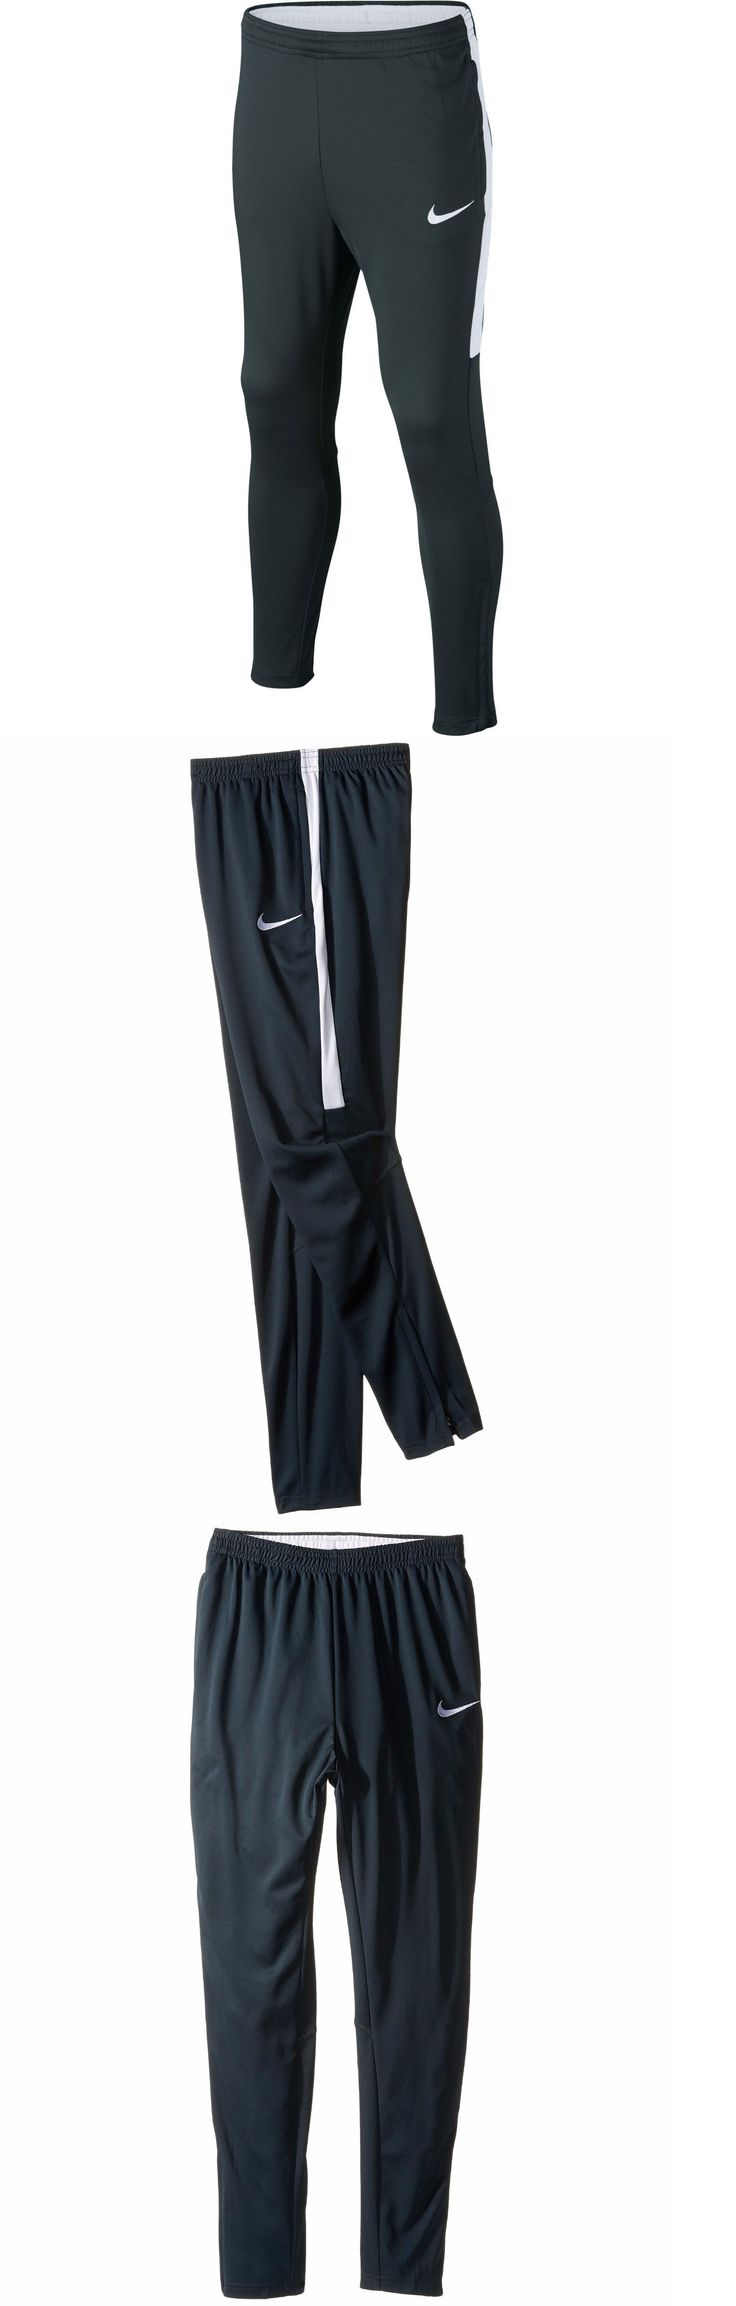 Youth 159099: Youth Big Kids Nike Dry Academy Soccer Pants 839365 364 Size L Seaweed White -> BUY IT NOW ONLY: $36 on eBay!